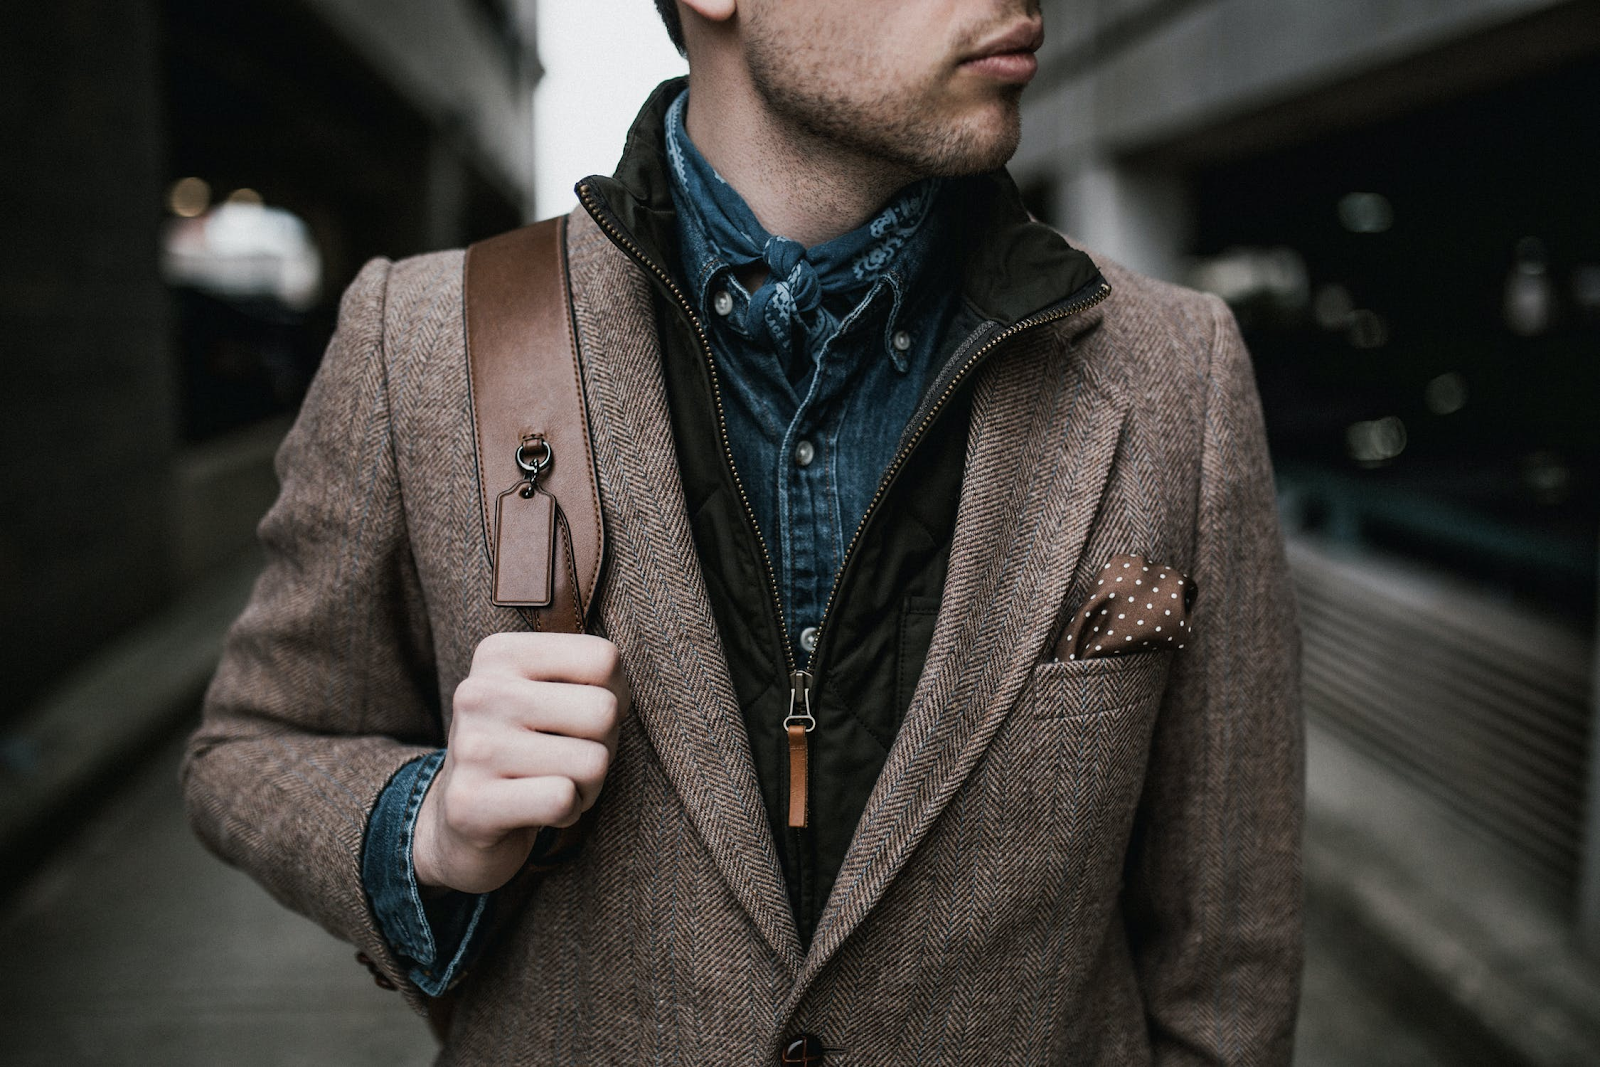 Young adult establishes his unique fashion sense with a fun pocket square and a bandana.